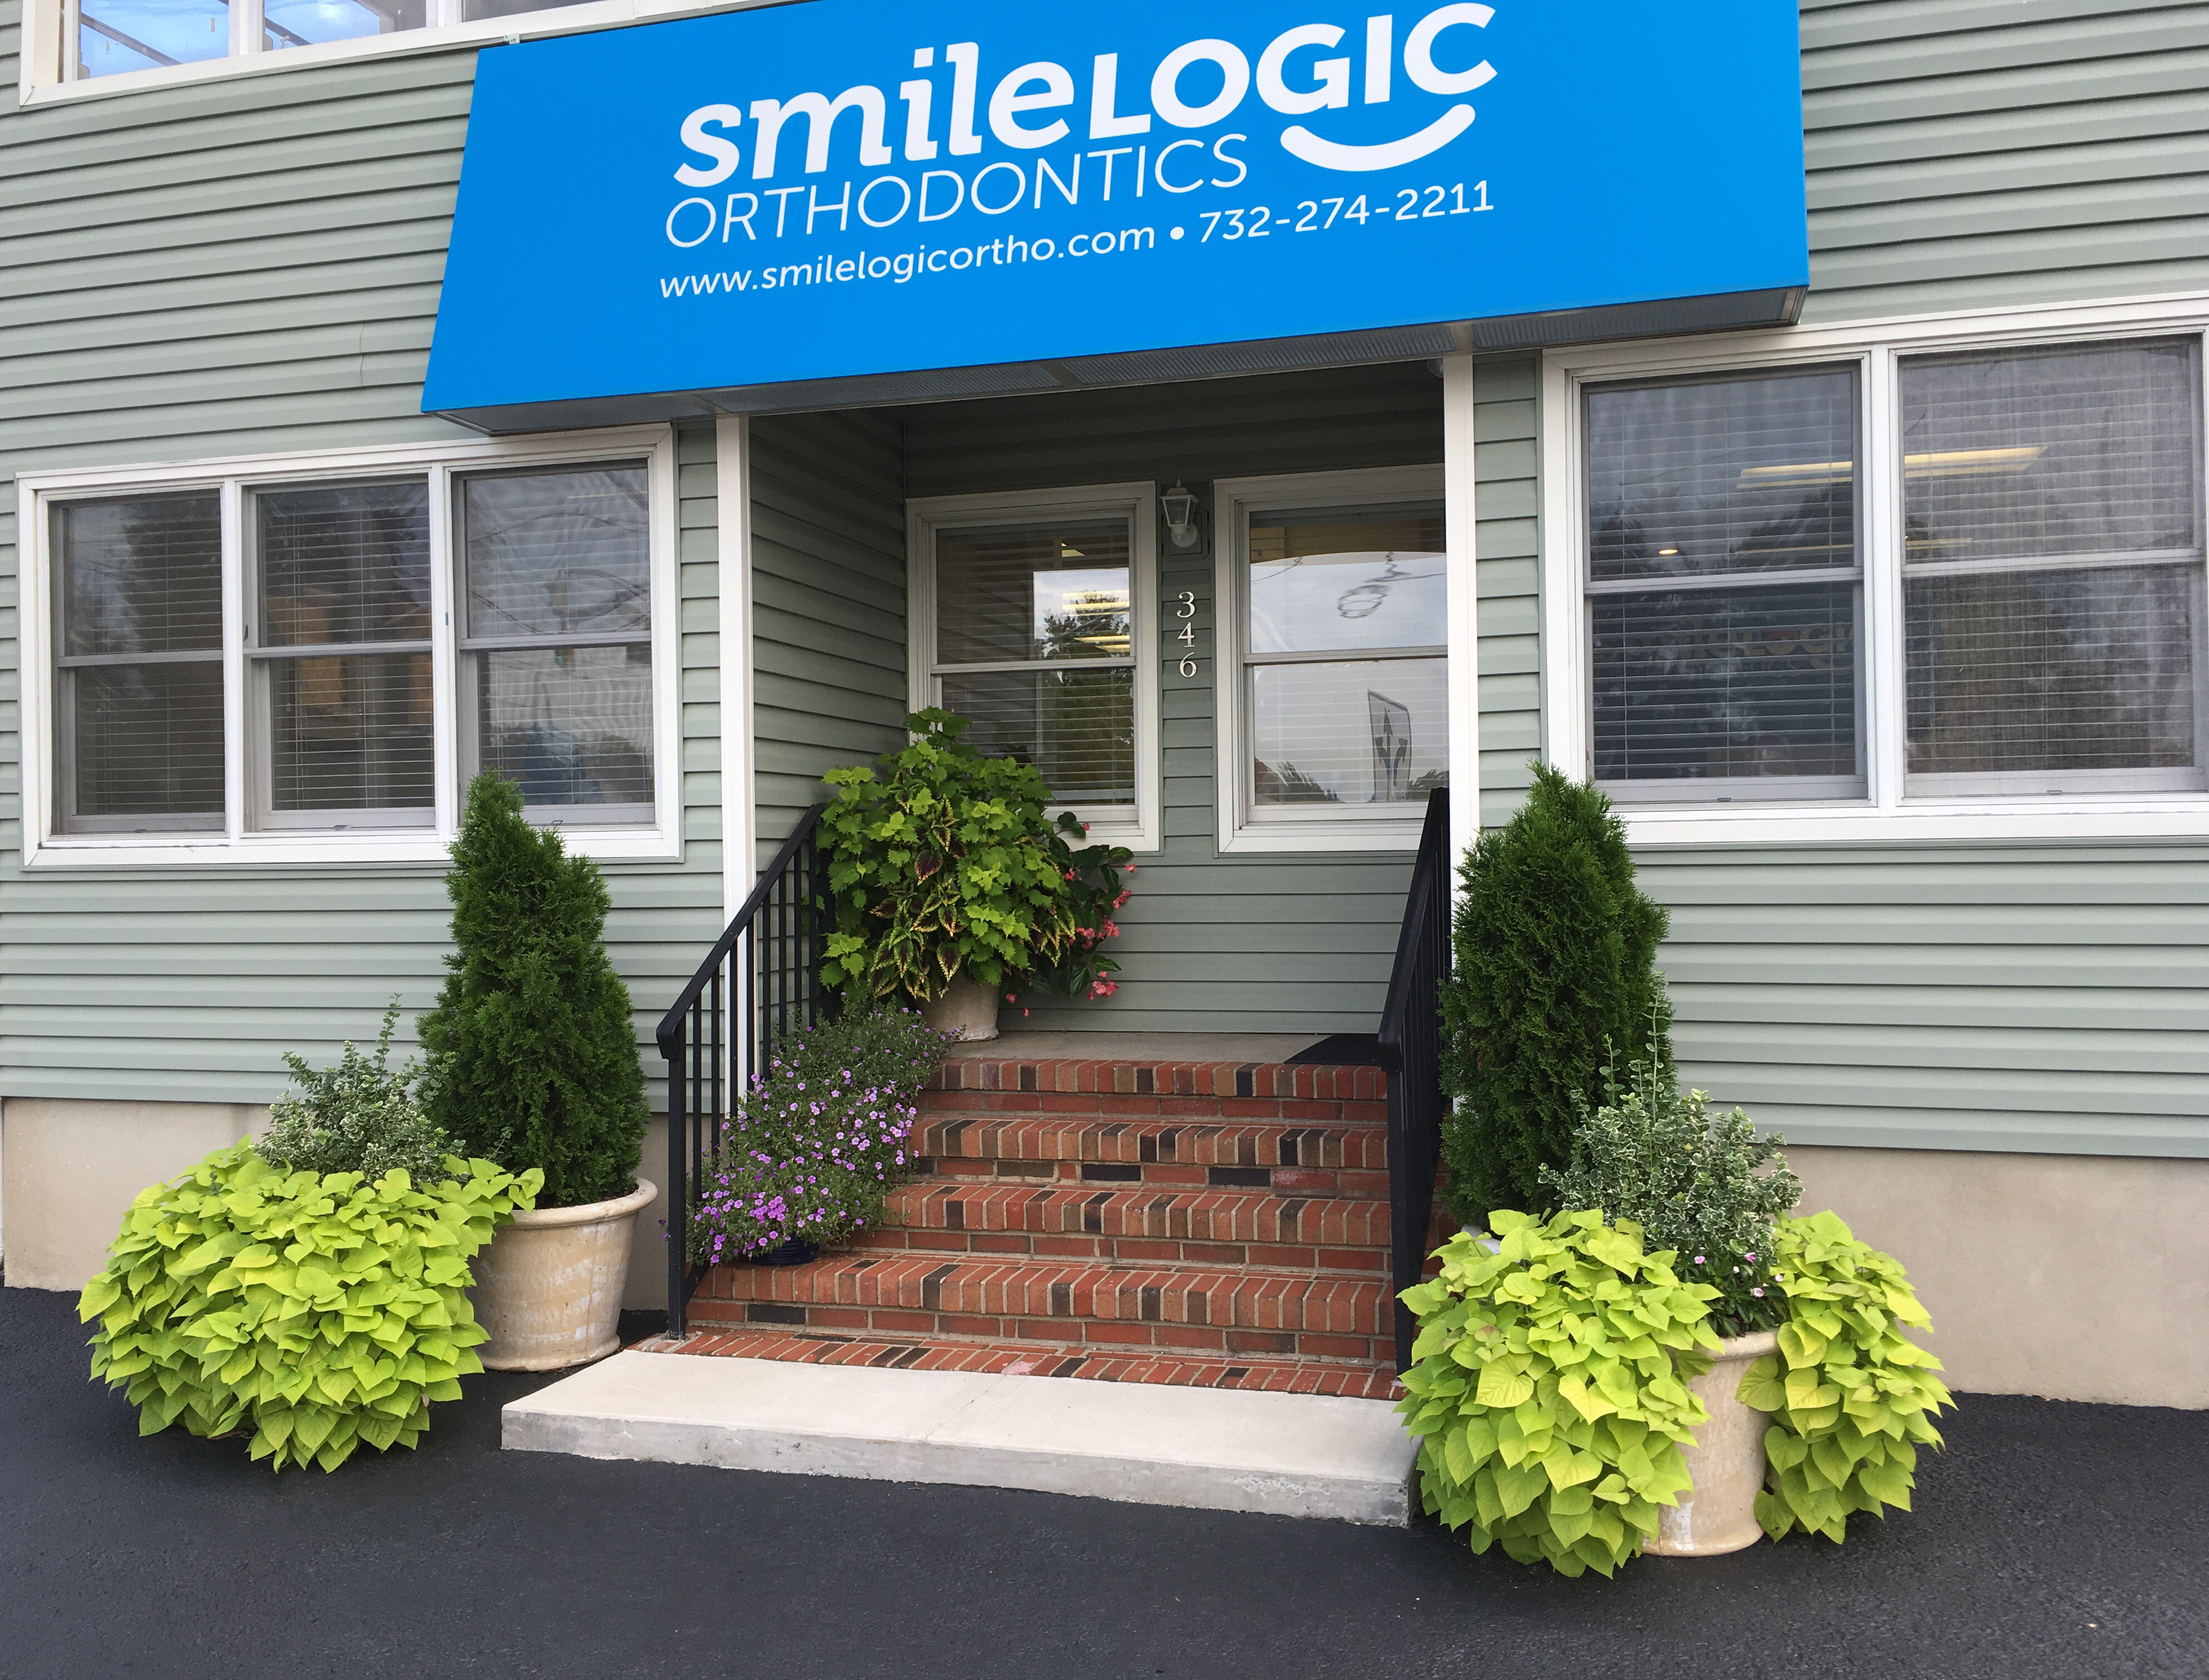 How to fix braces at home · Smile Logic Orthodontics · South ...